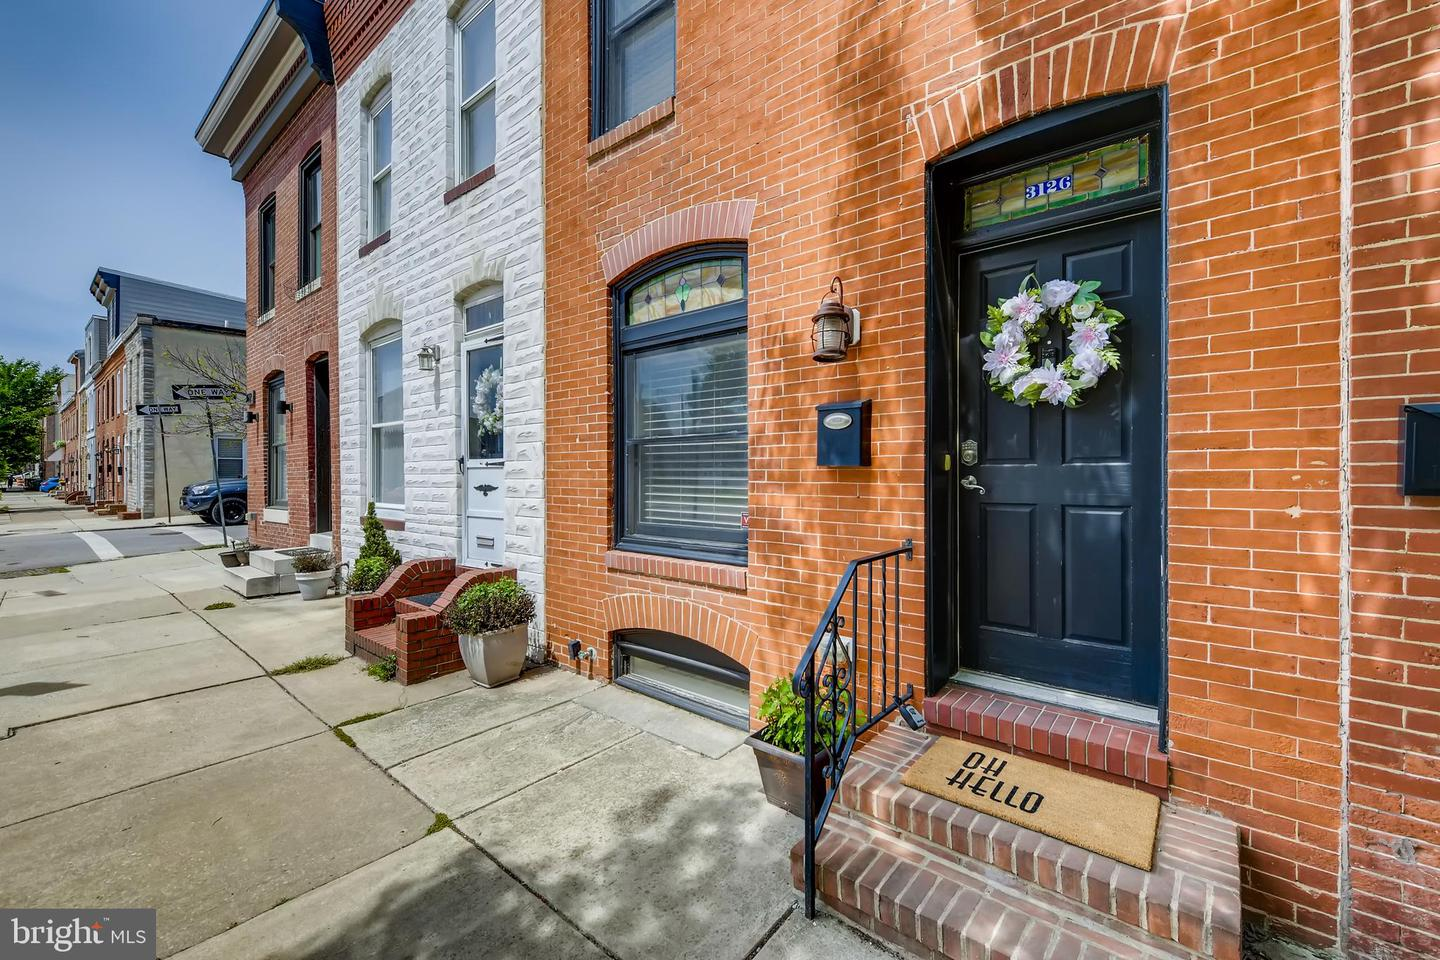 3126 Elliott Street   - Baltimore, Maryland 21224